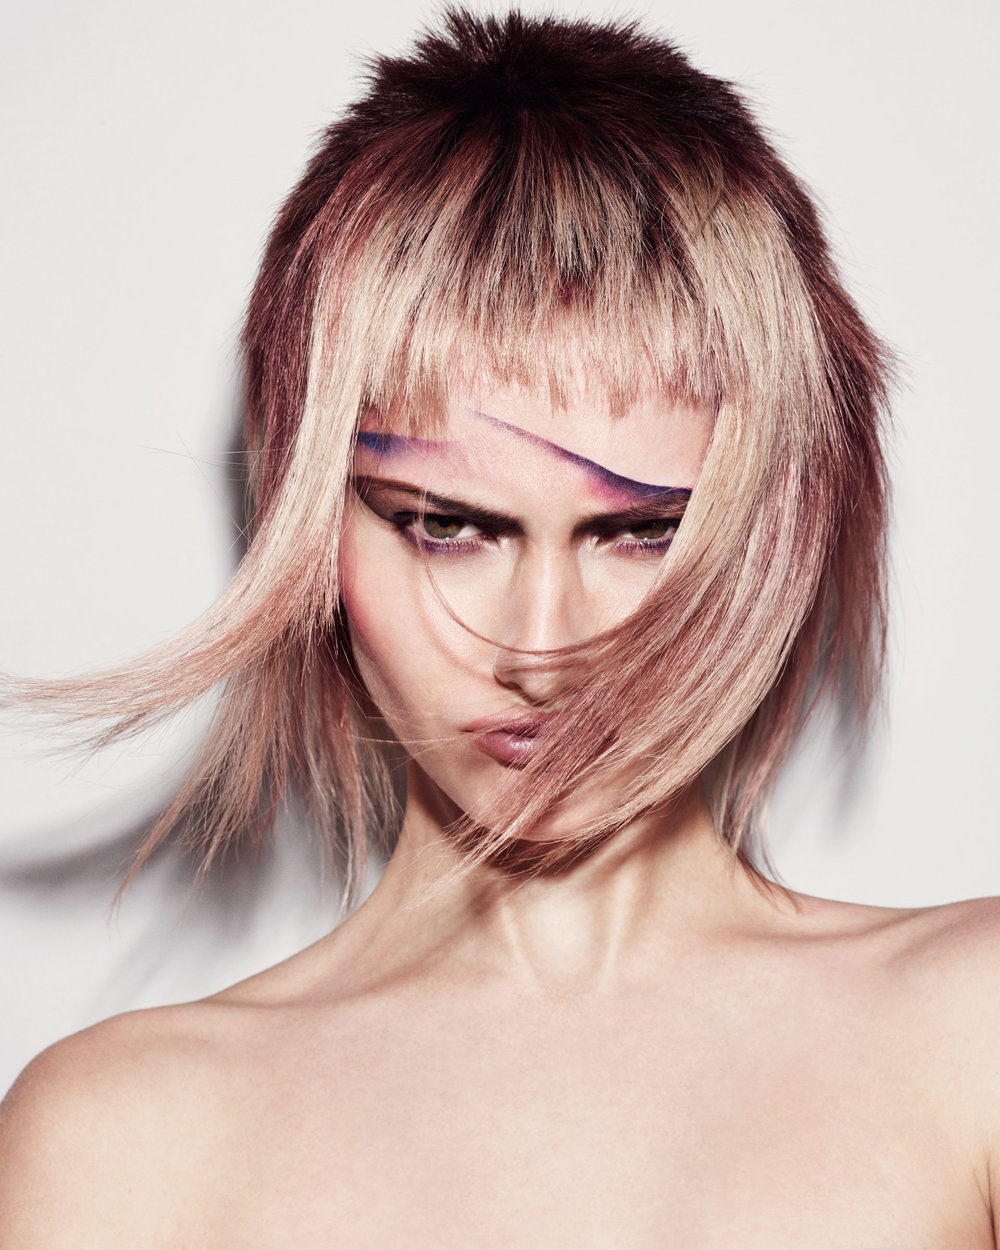 Jack_Eames_Hooker_Young_Colour_Pop_Hair_Beauty_MakeUp_Photography_London_06.jpg